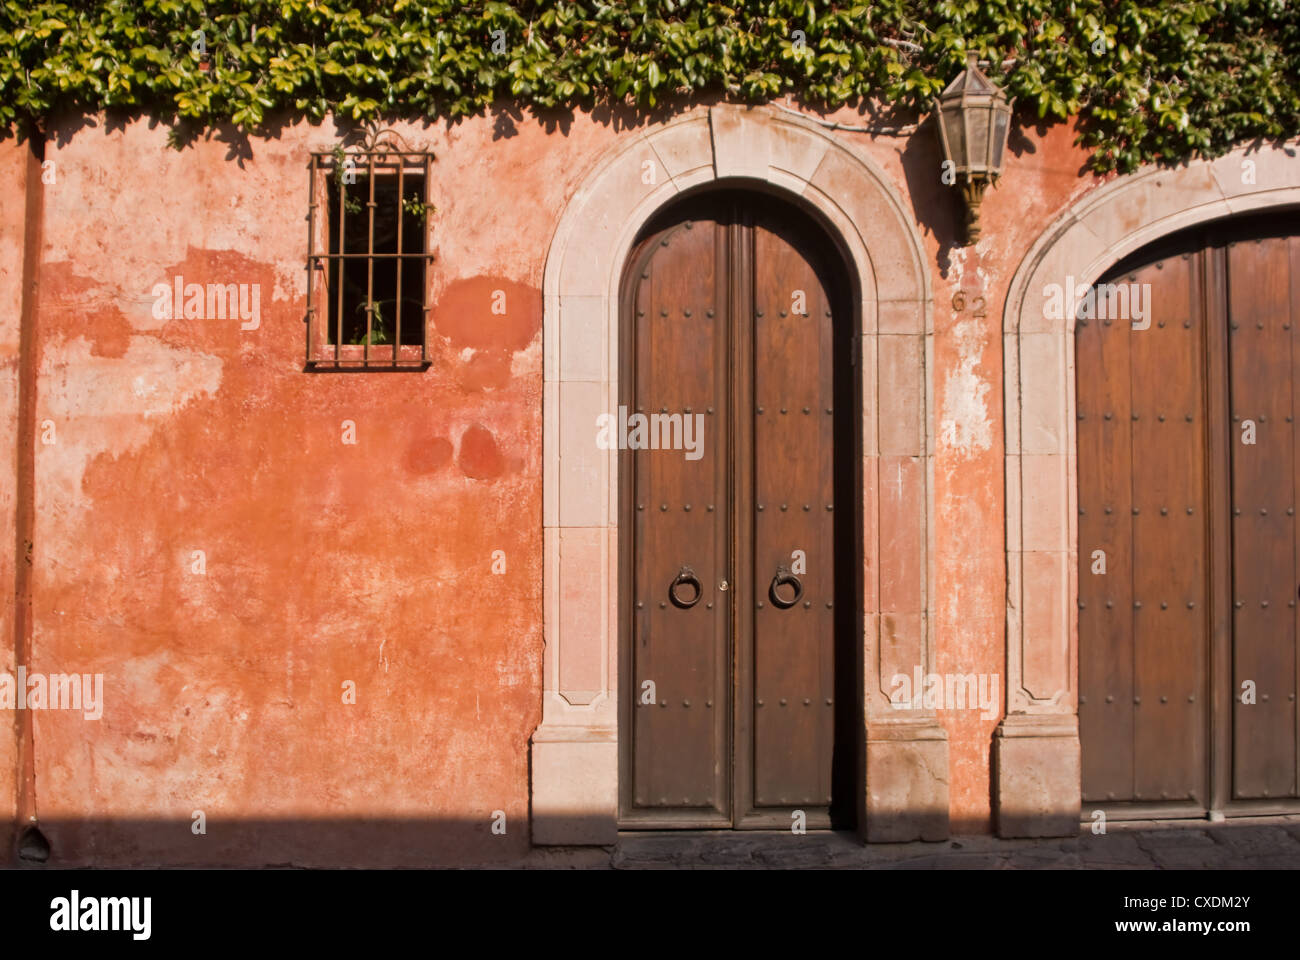 Colonial arches on Mexican house exterior - Stock Image